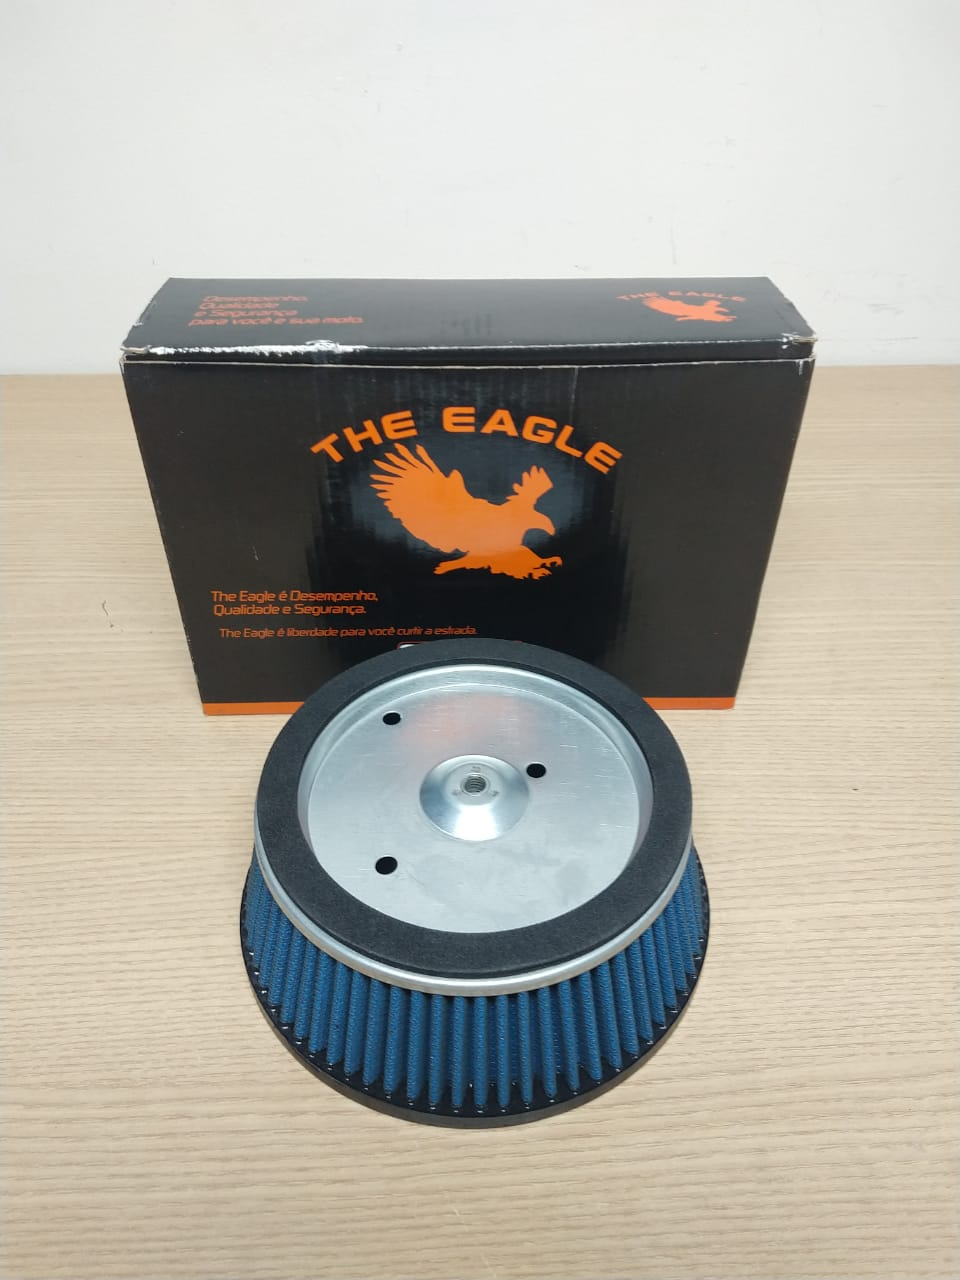 TE 1001 - Filtro De Ar The Eagle Hd Touring 2008 à 2017 - Redondo - 016/11693